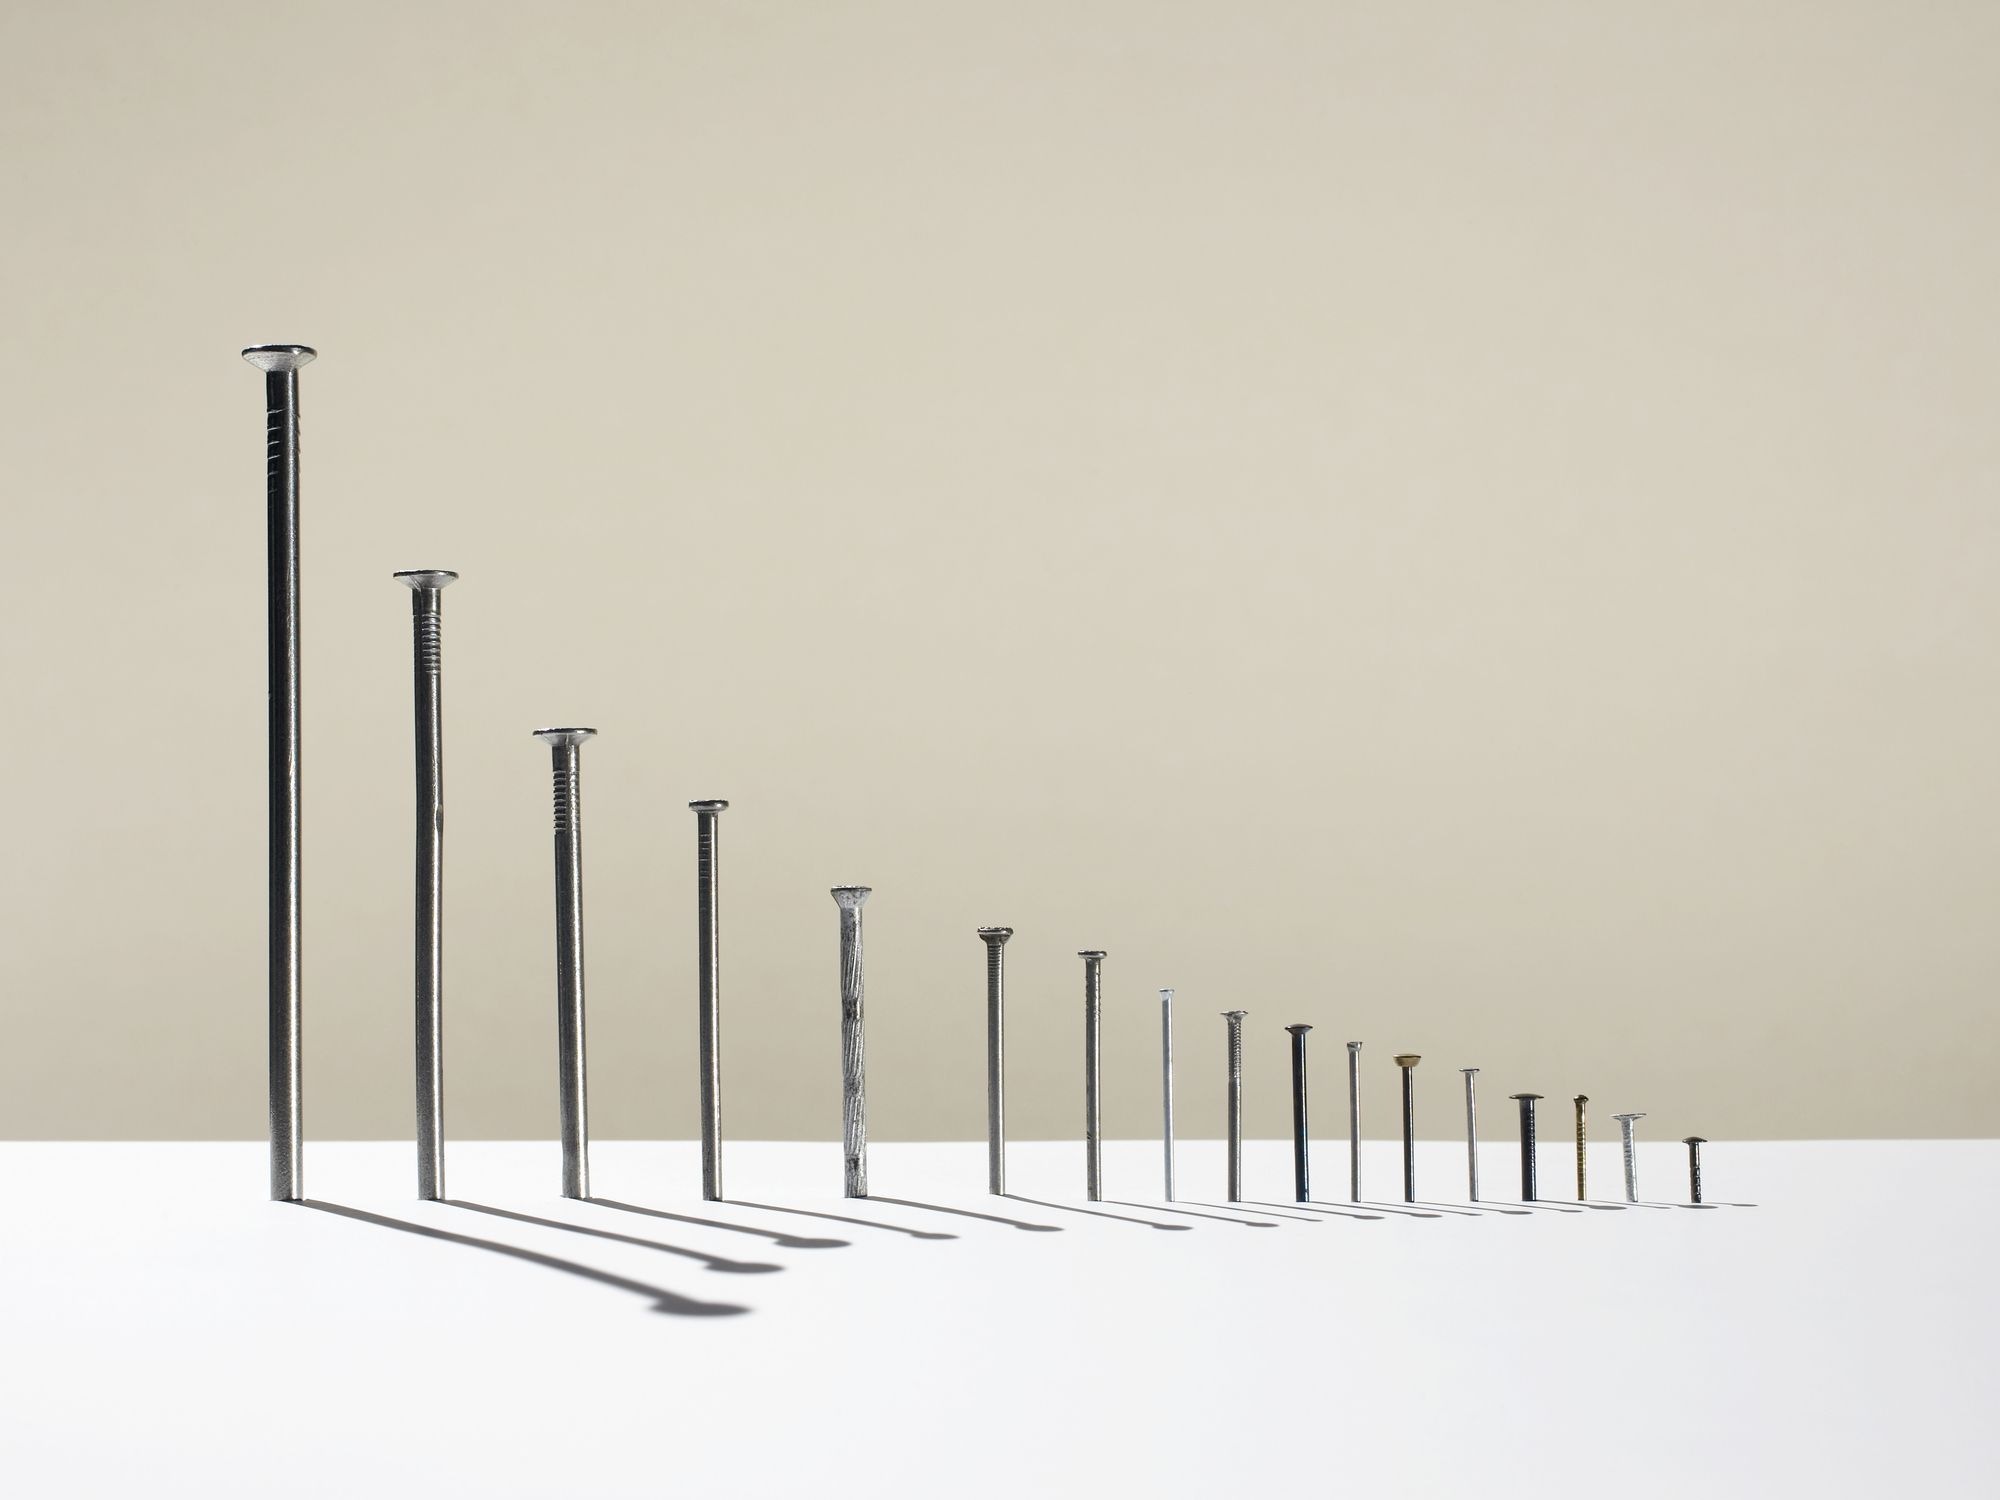 Row of nails of different heights